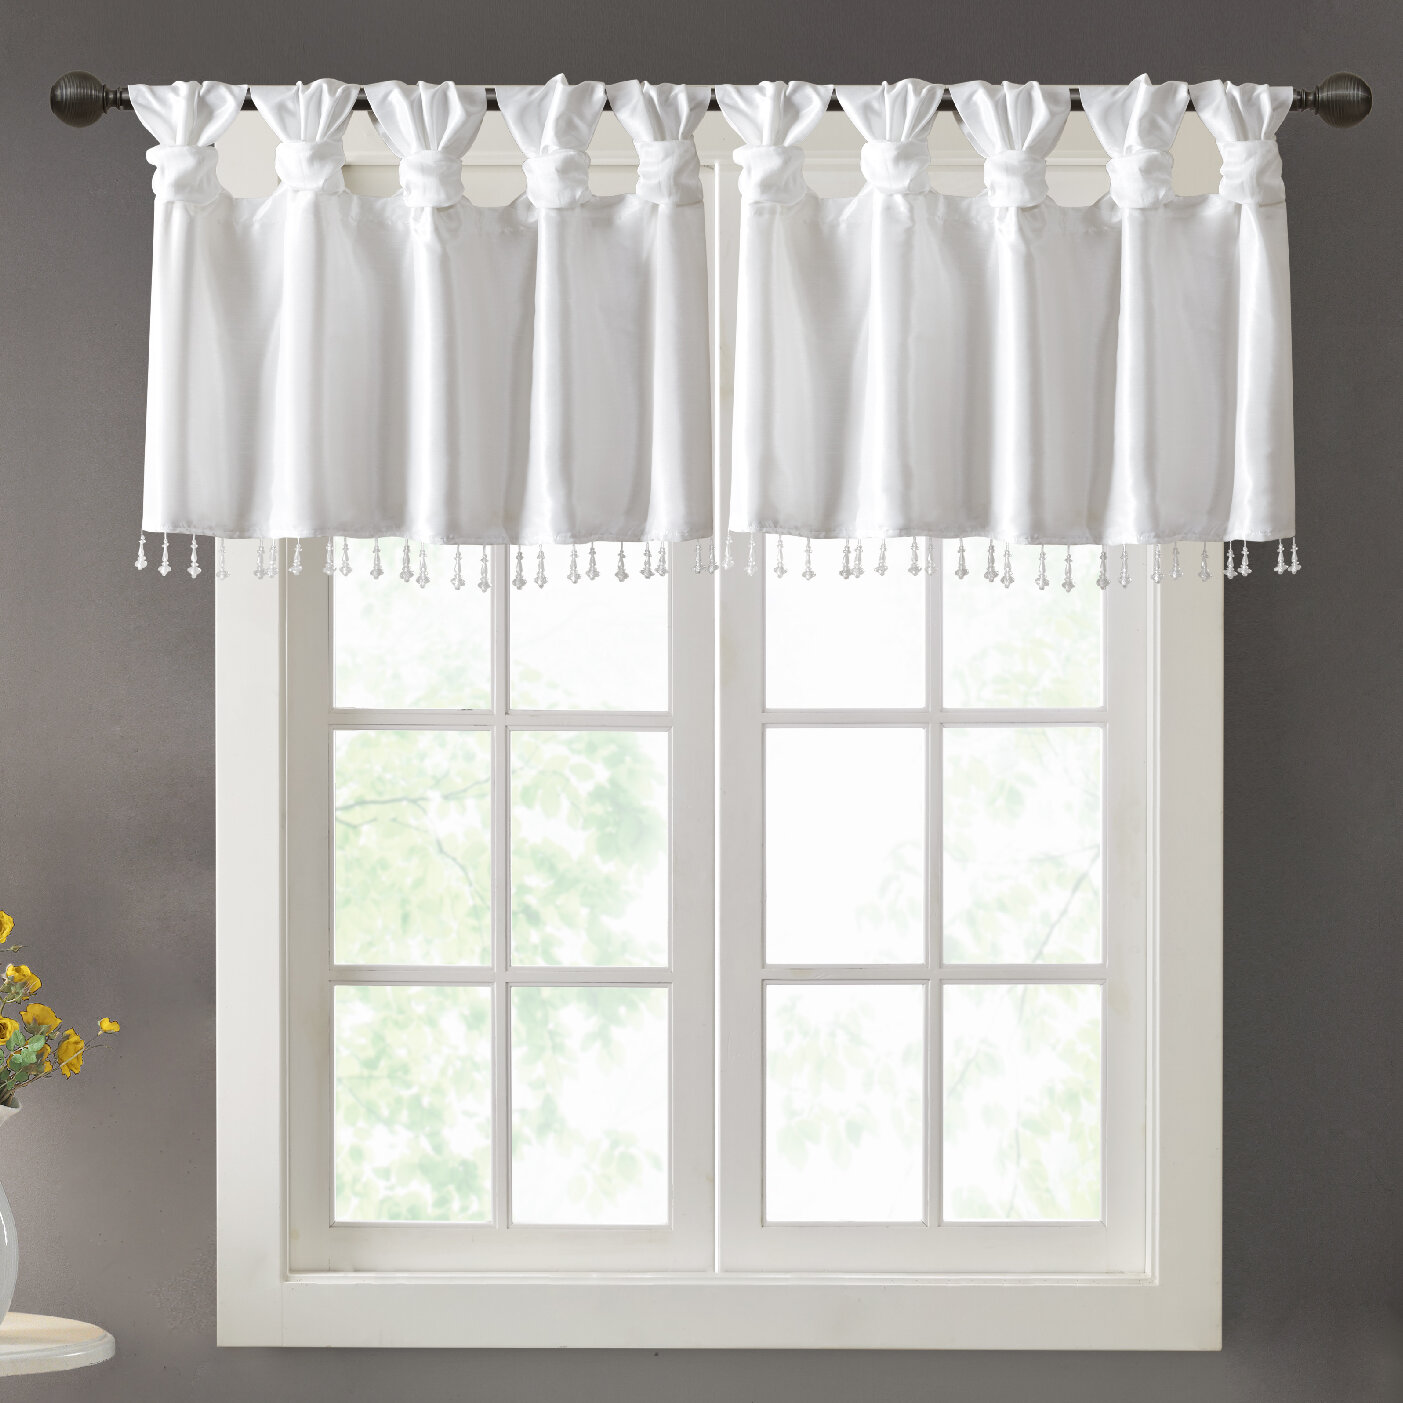 Enders 50 Window Valance Reviews Birch Lane